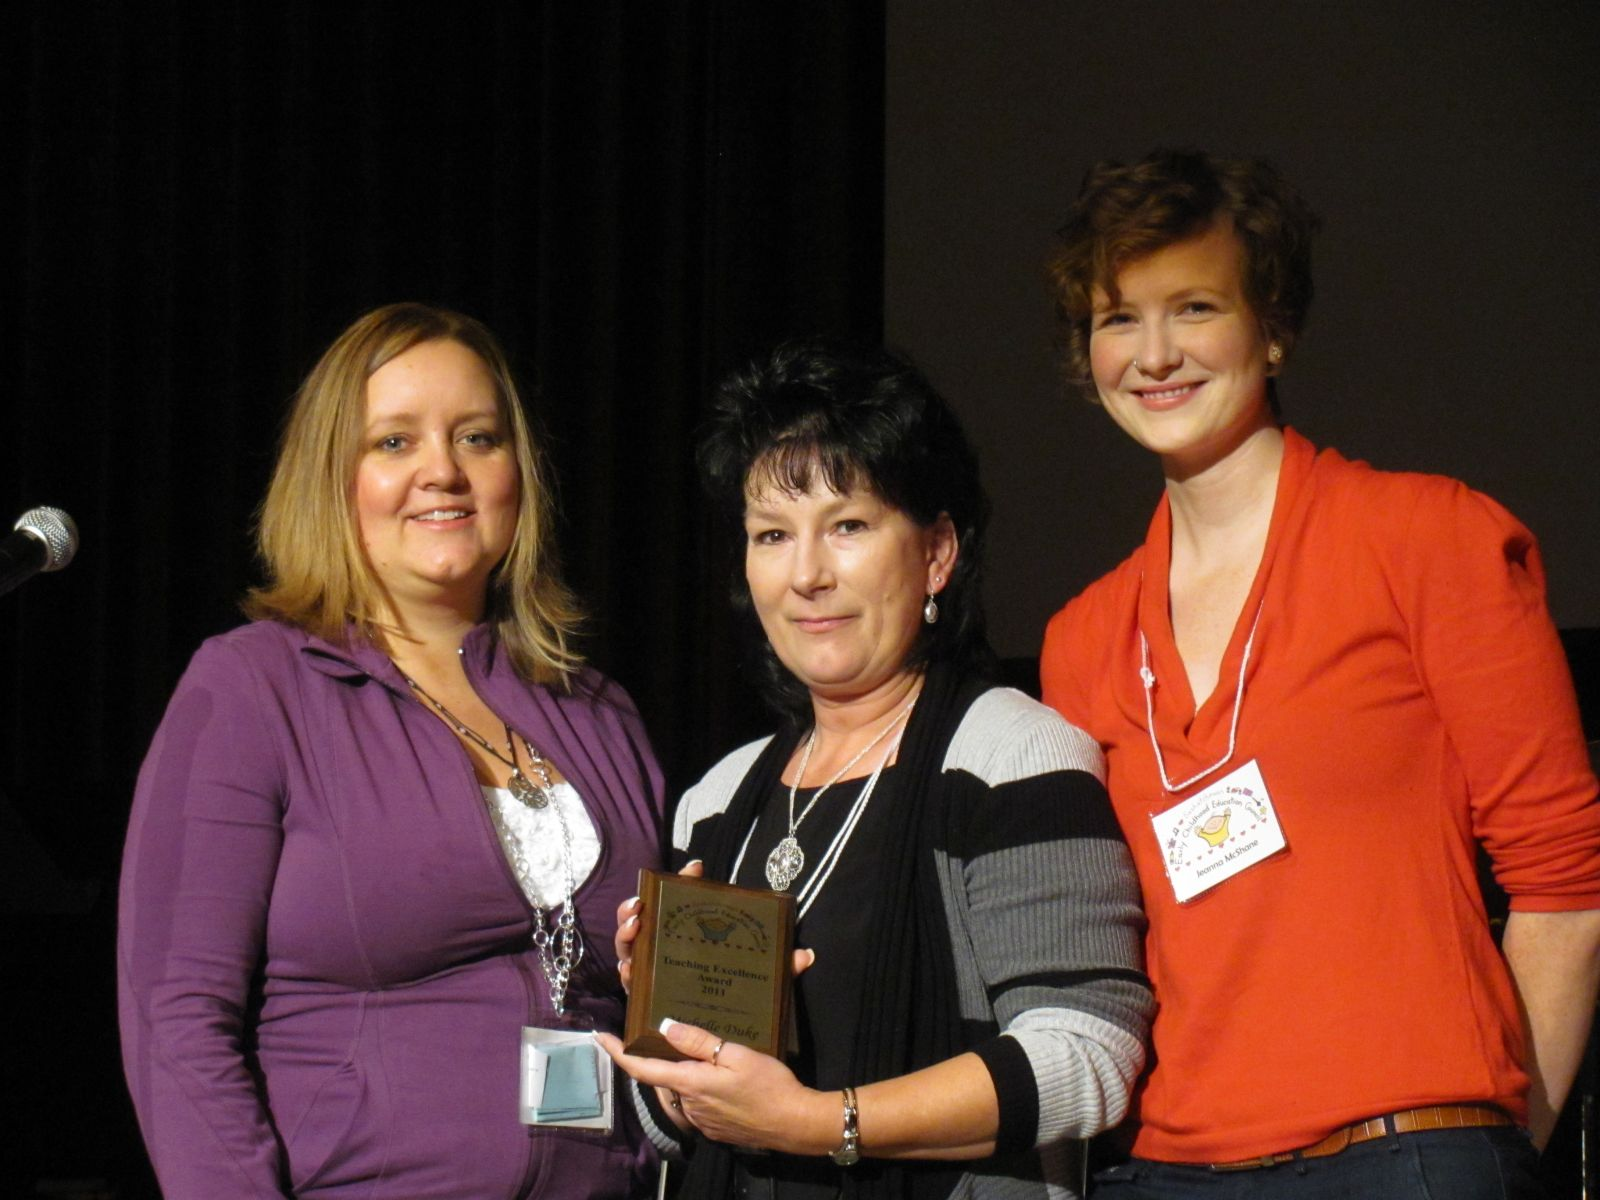 Excellence in Early Childhood Award: MIchelle Duke Presented by Jennifer Gruending-Pizurny and Jeanna Bergerman